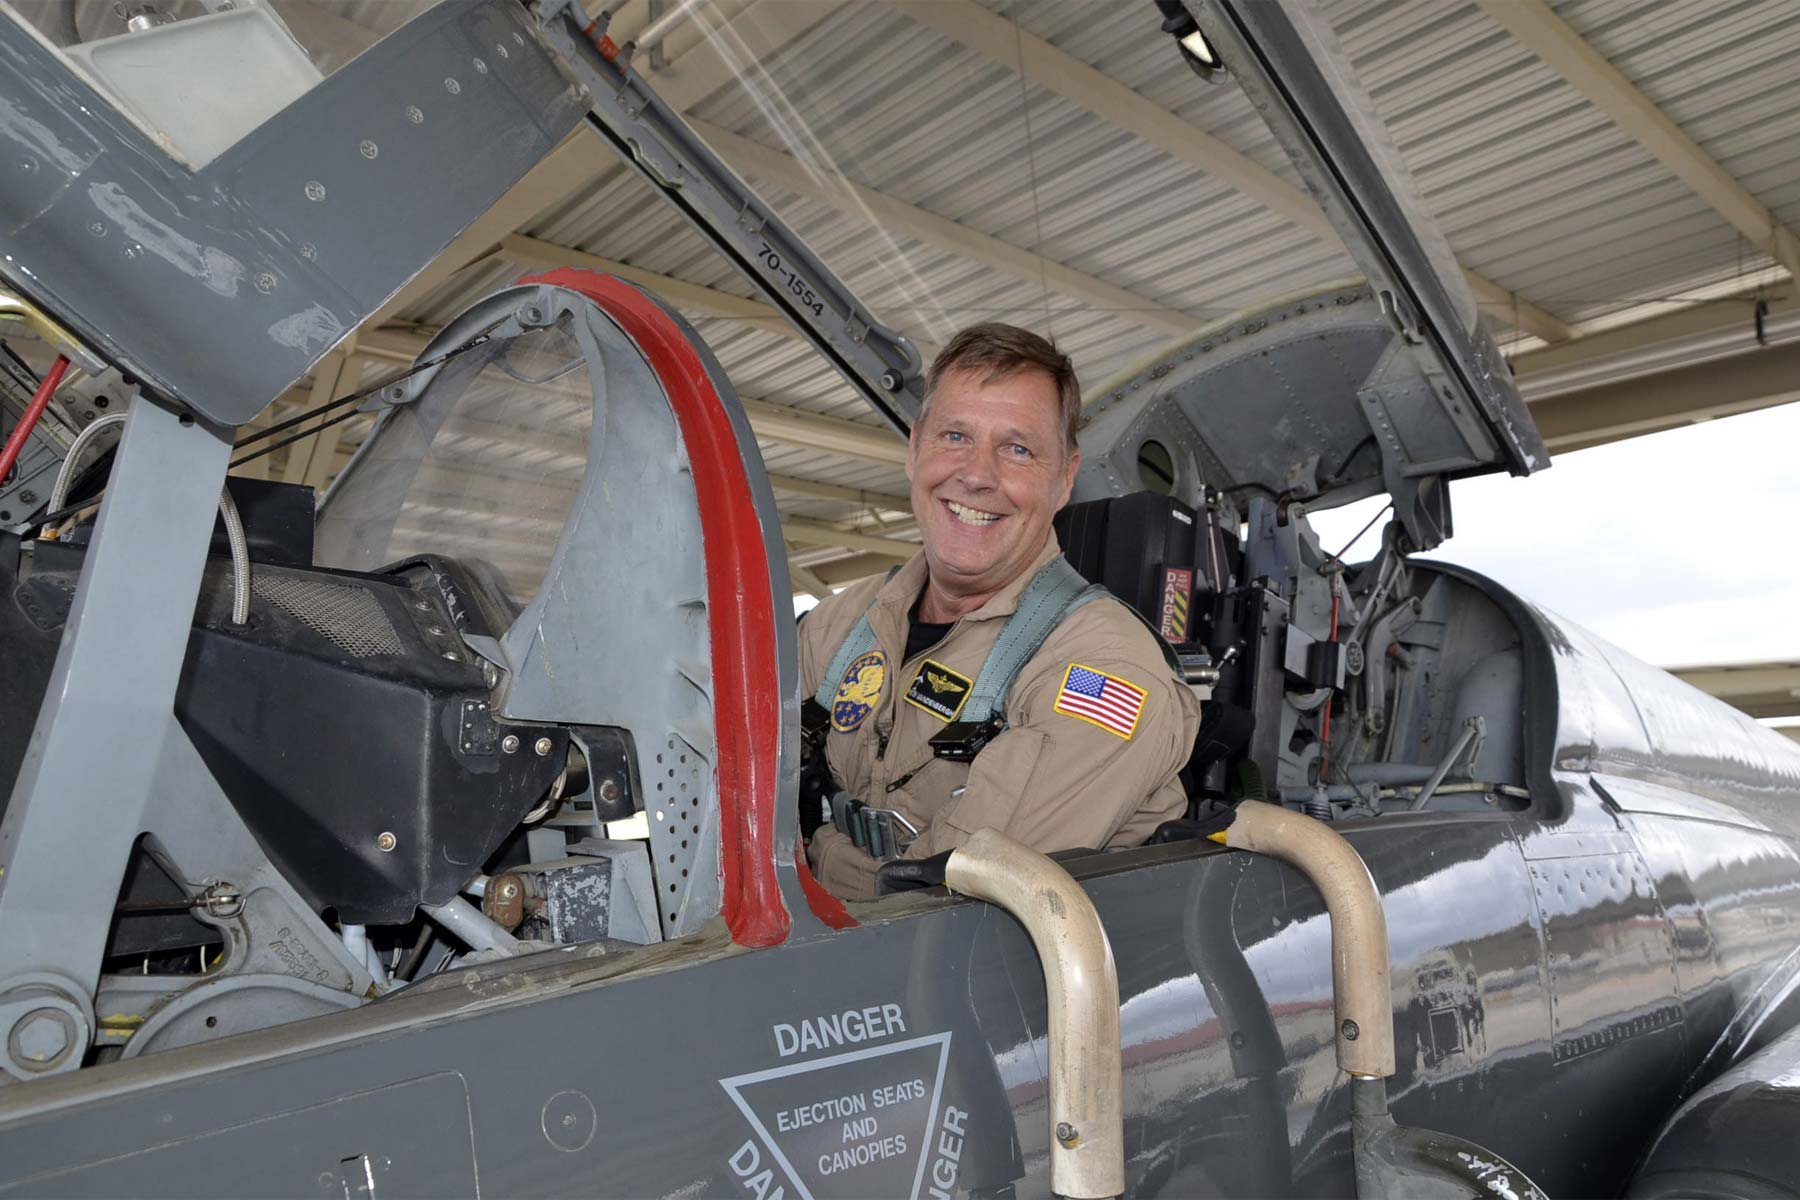 If You're a Retired Pilot, the Air Force Wants You Back